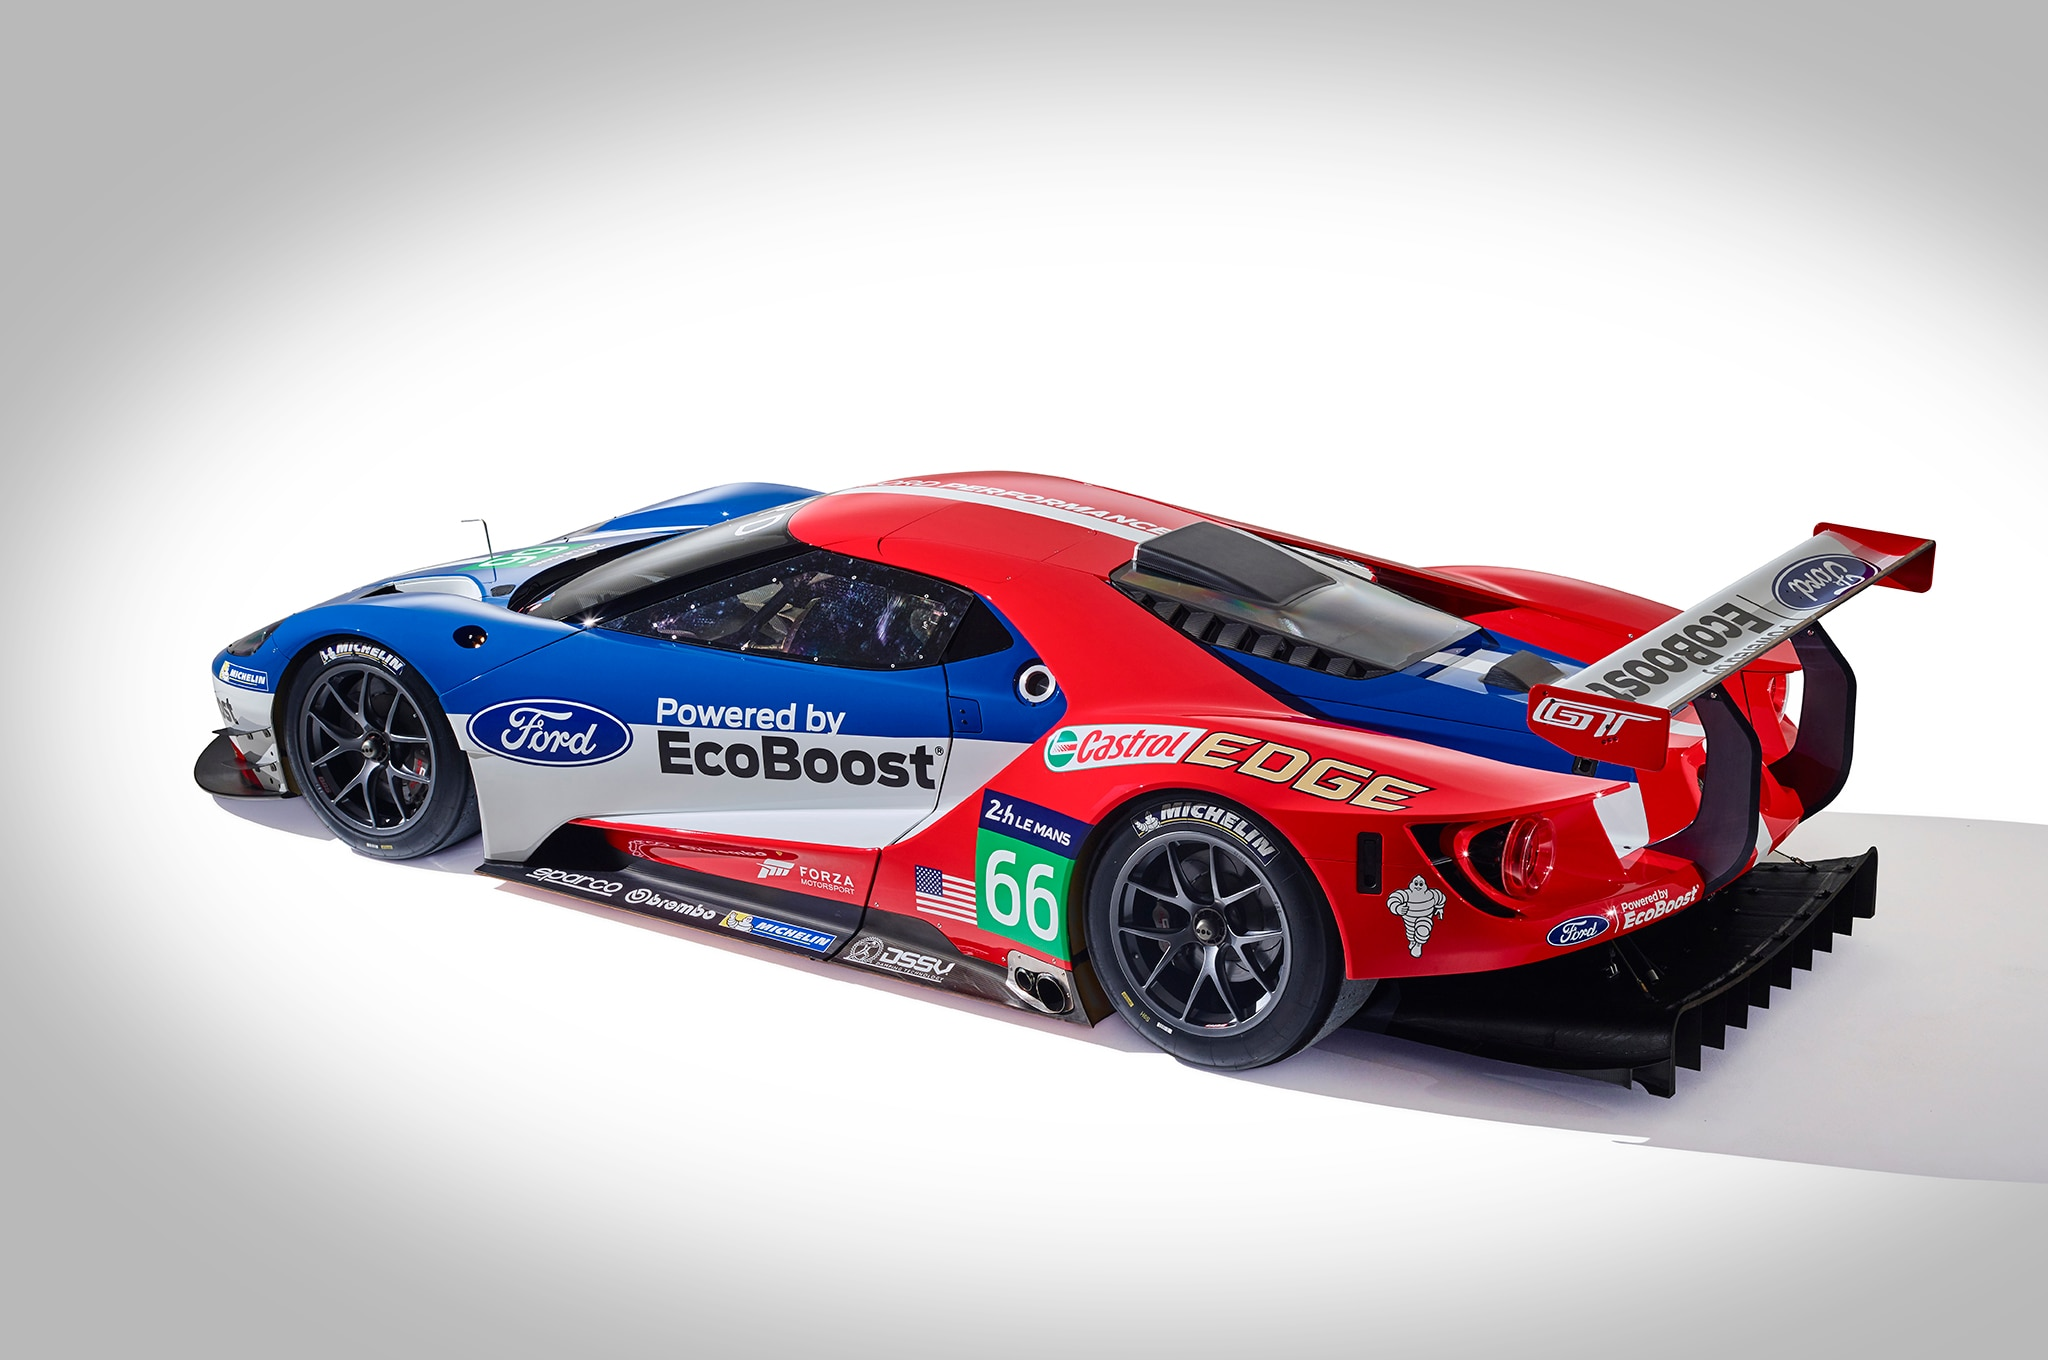 The first car ... & The New Ford GT is Ready to Race markmcfarlin.com